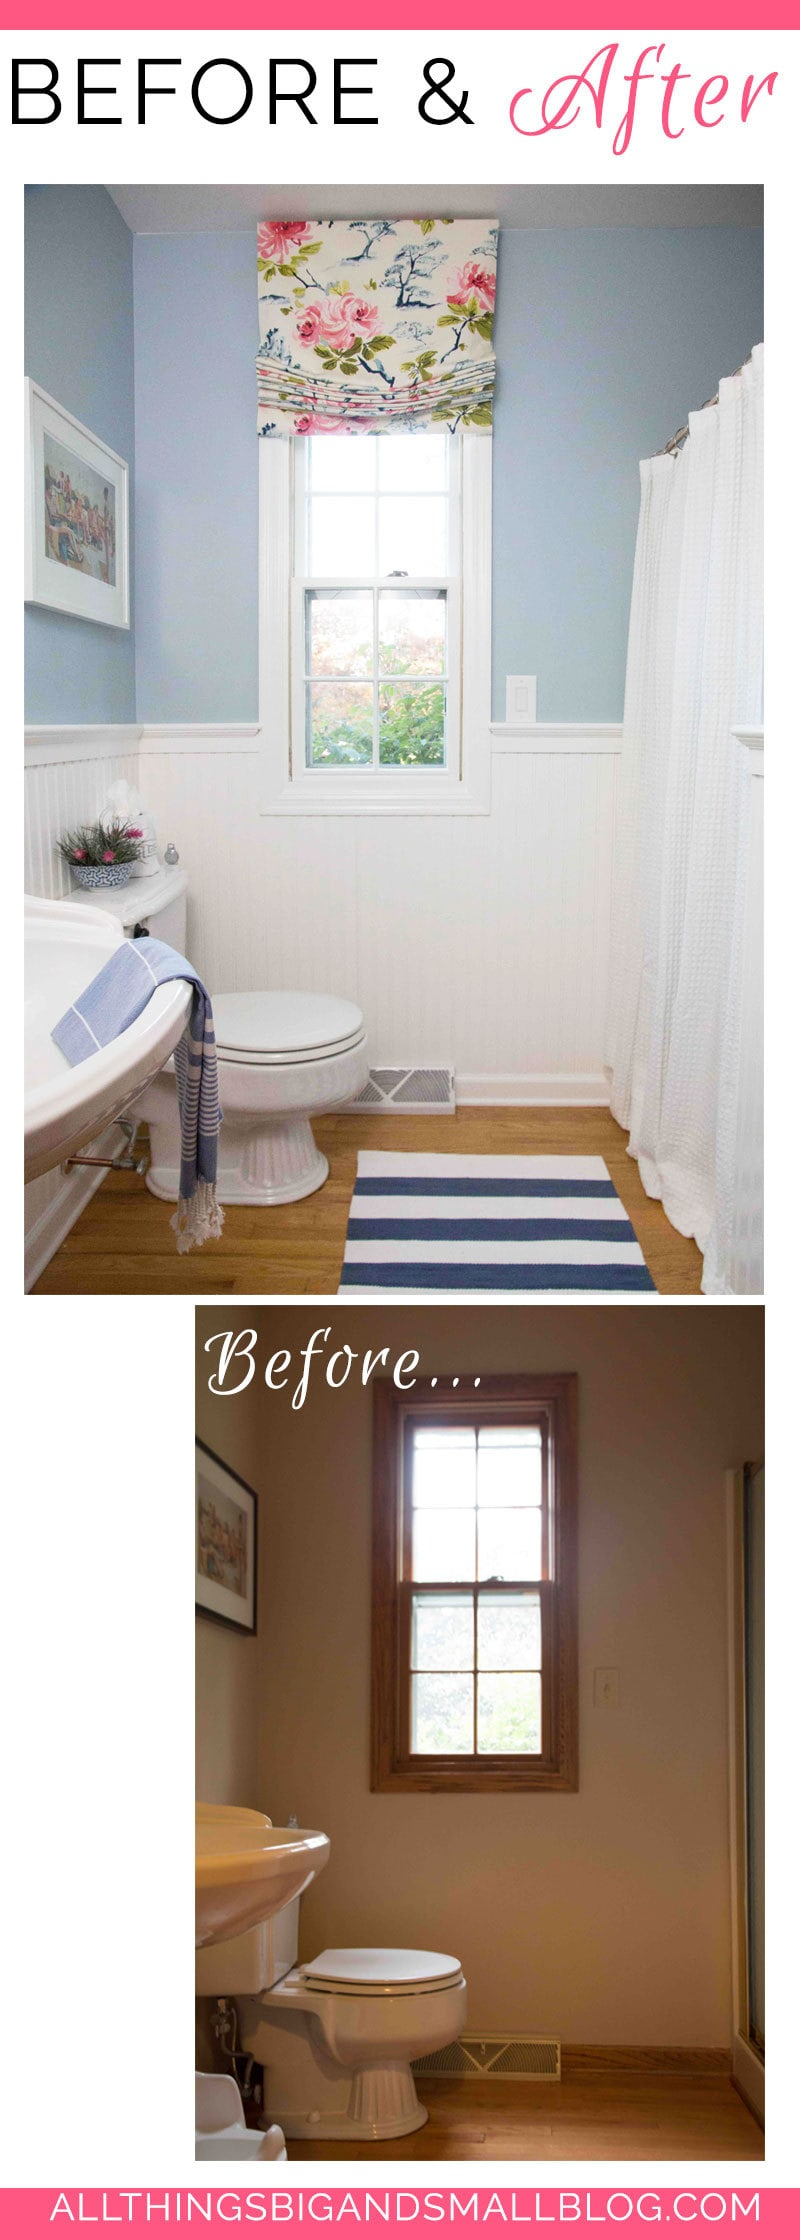 Budget Friendly Bathroom   Before and After   DIY Bathroom   All Things Big and Small One Room Challenge